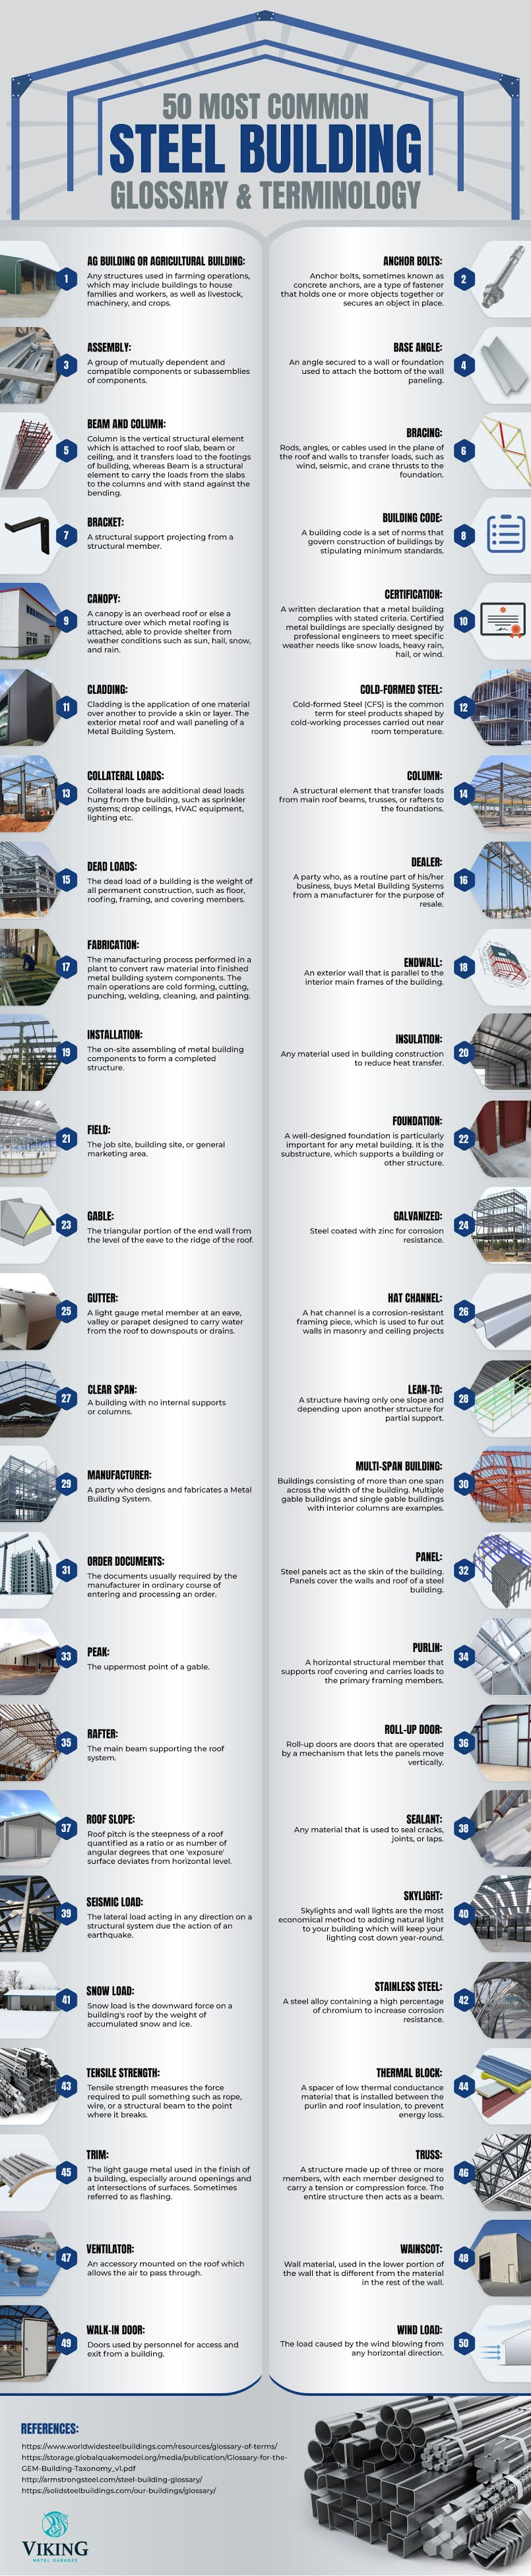 50 Most Common Steel Building Glossary & Terminology #infographic #Construction